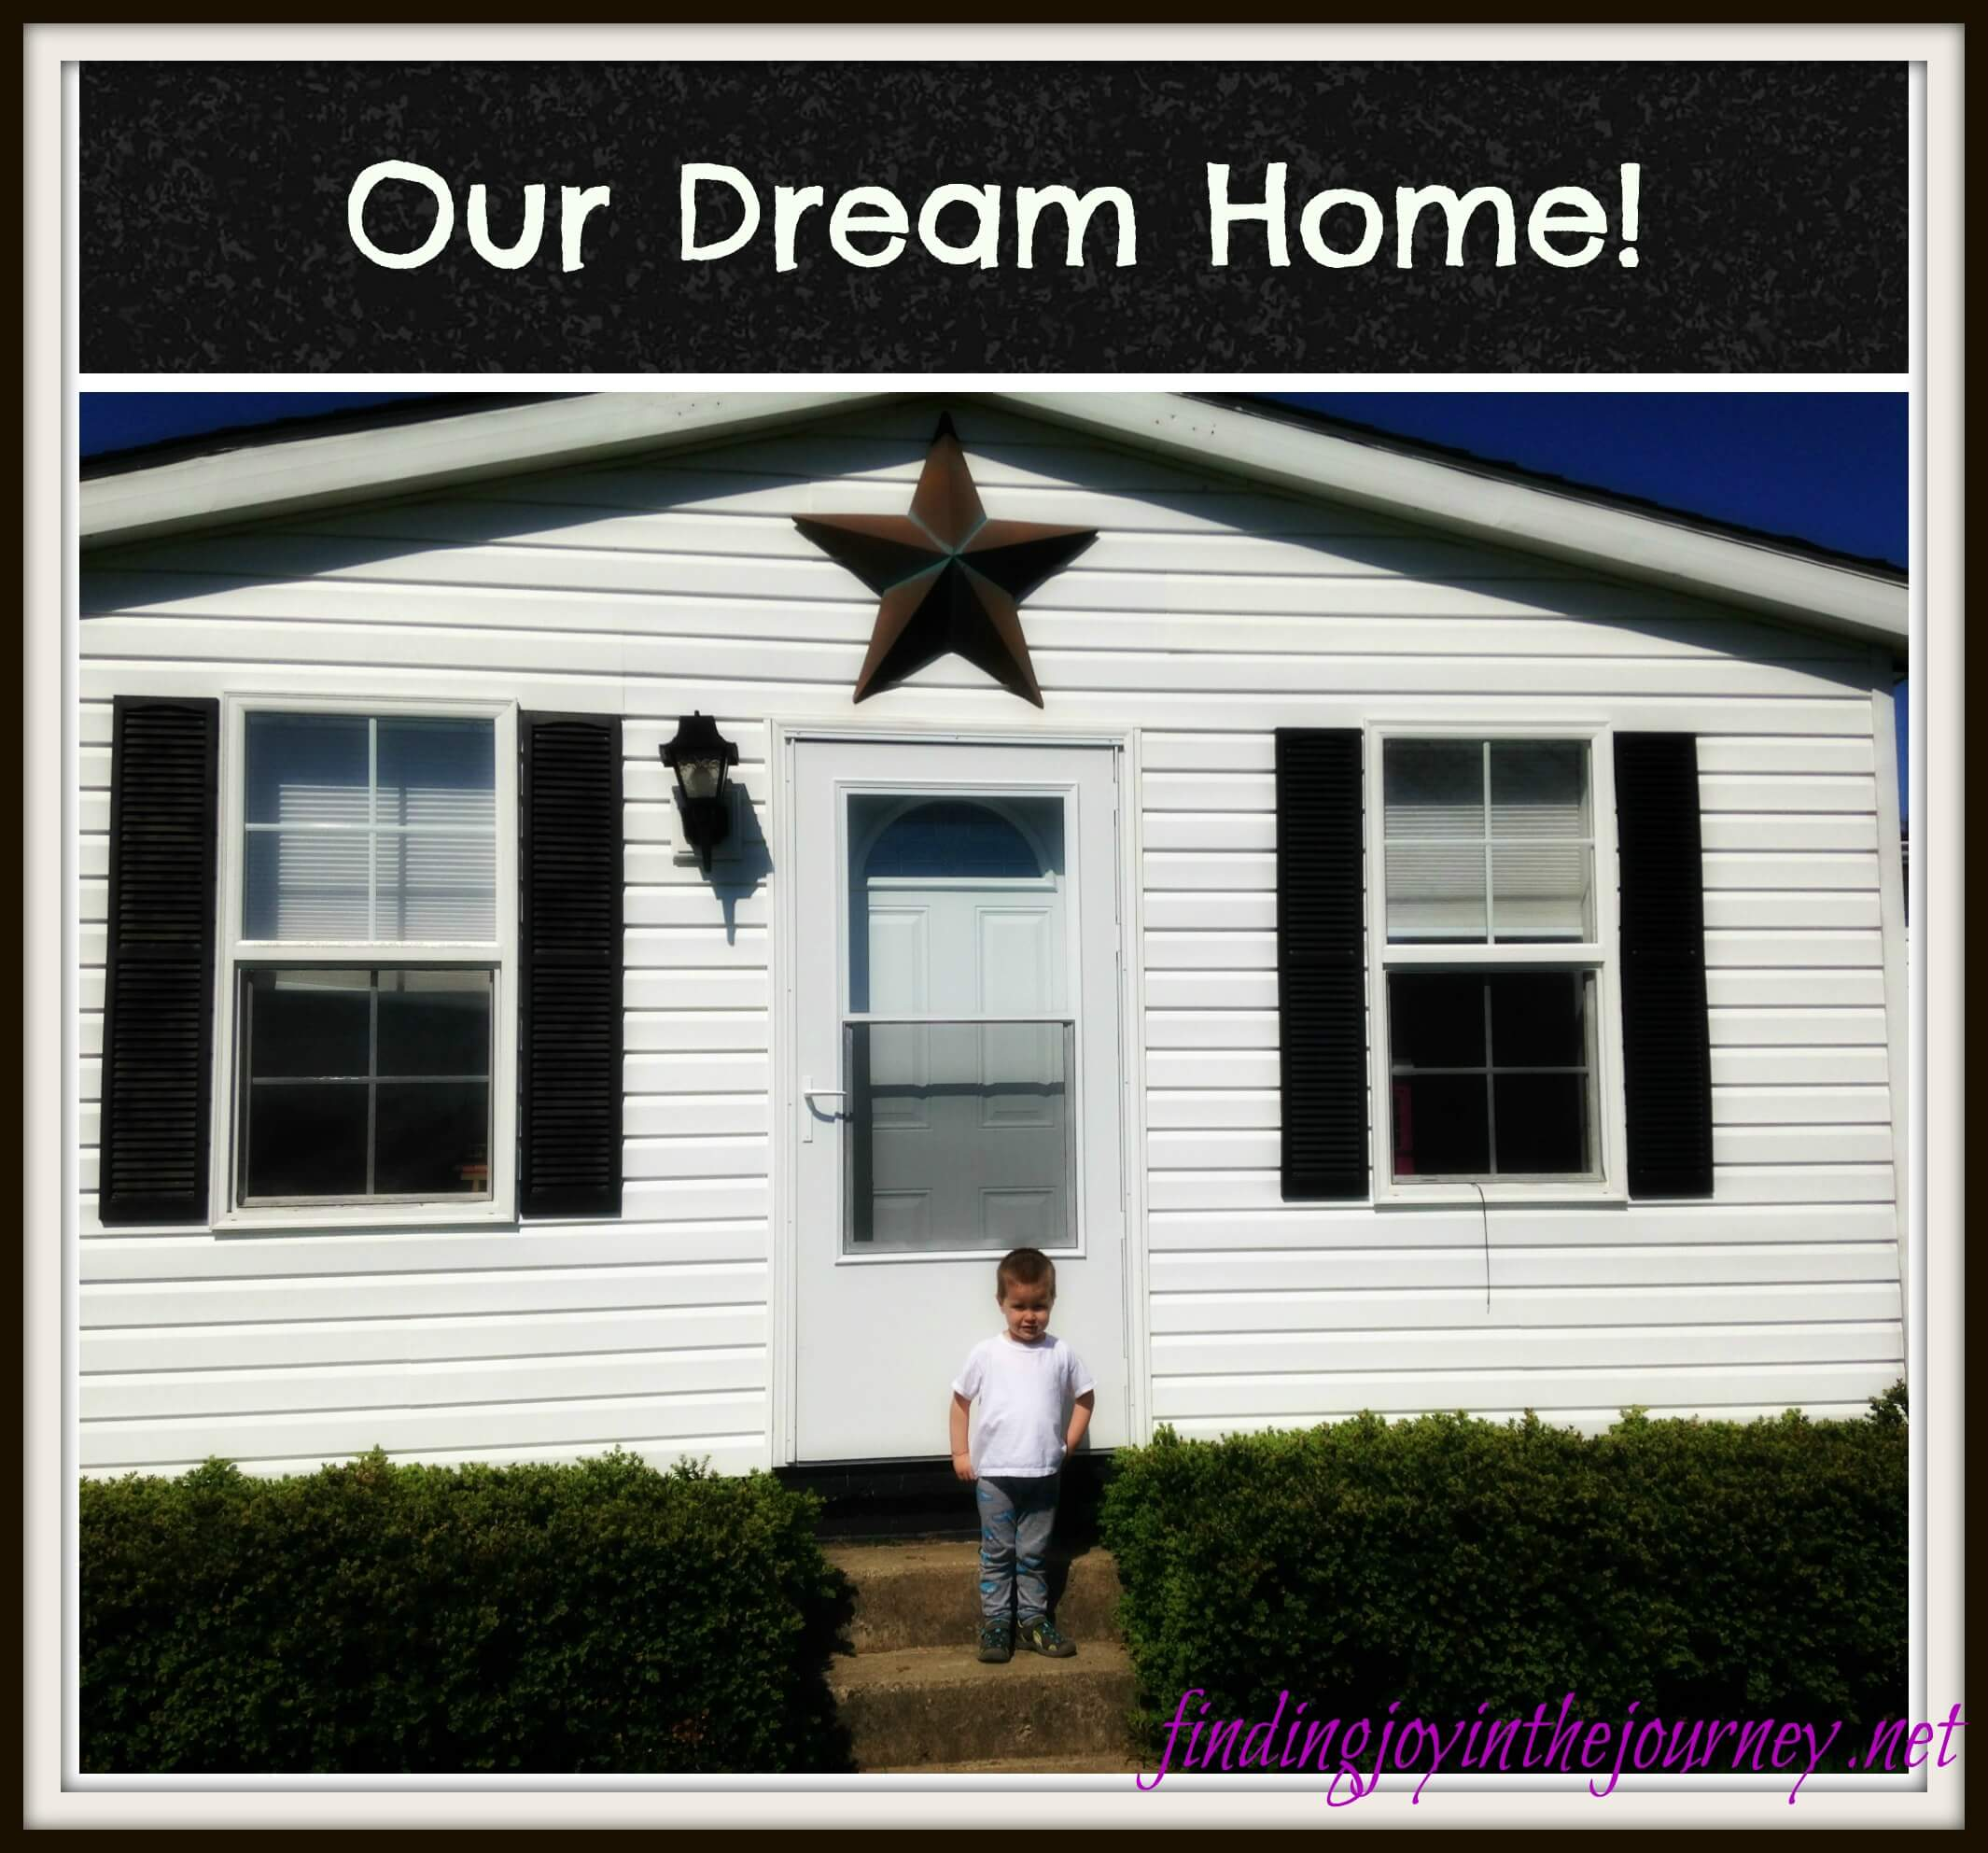 Finding Our Dream Home